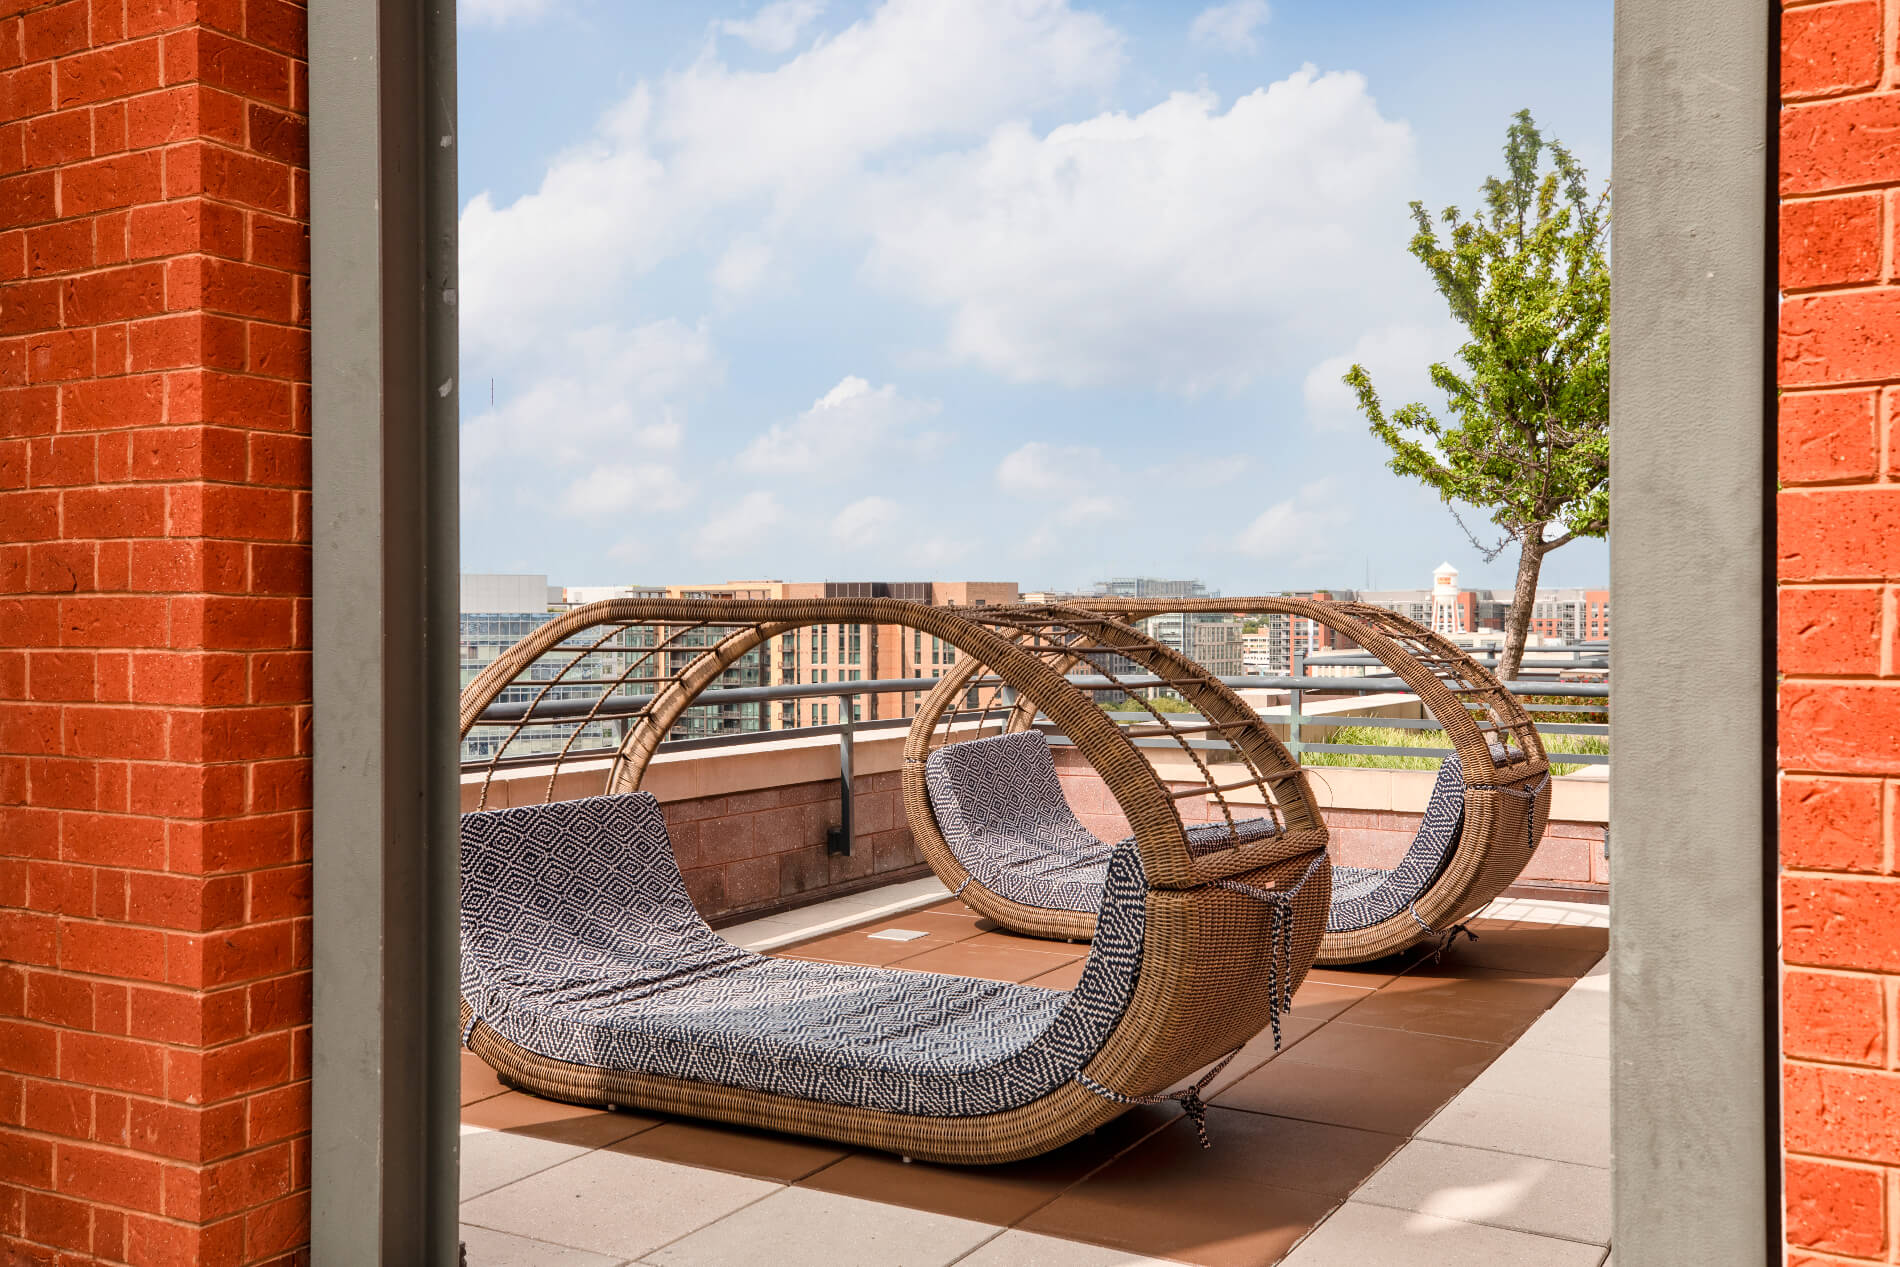 Rooftop wicker chairs in the shape of pods with large cushions